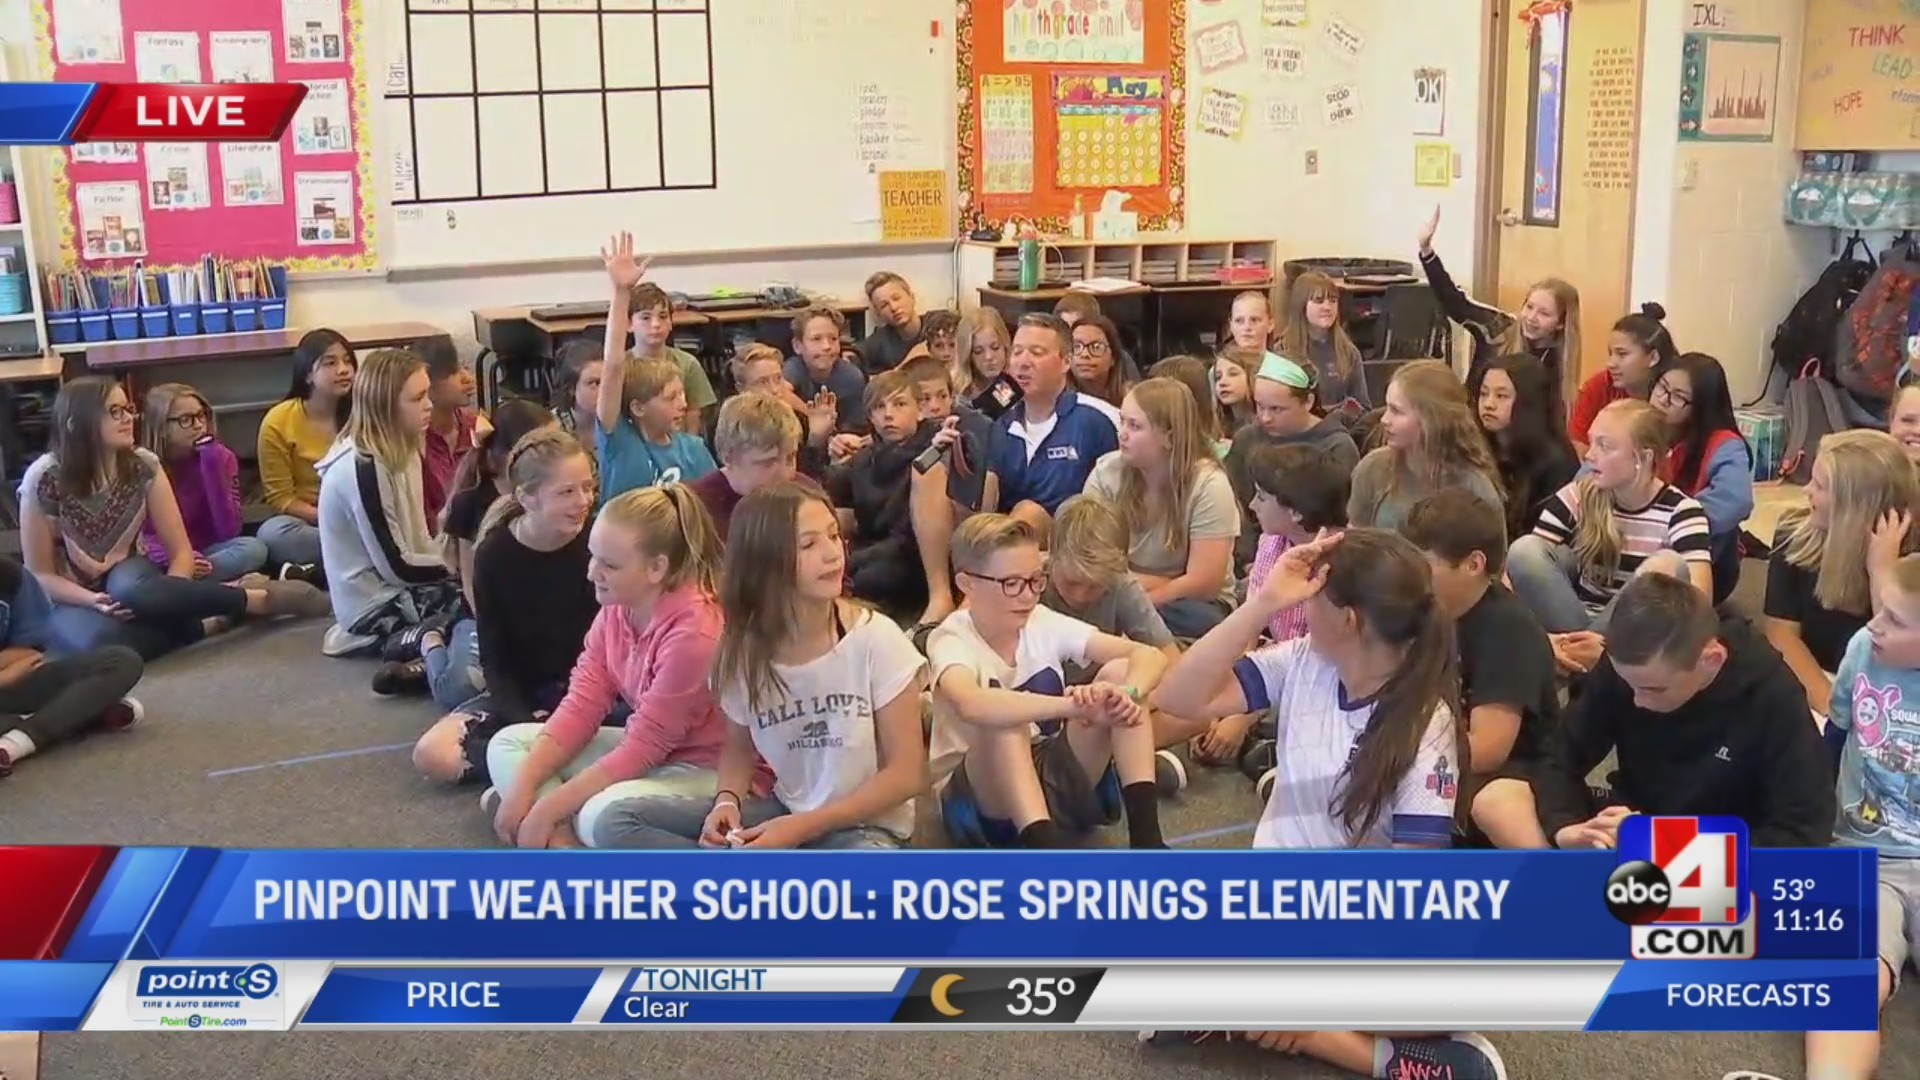 Rose Springs Elementary Weather School